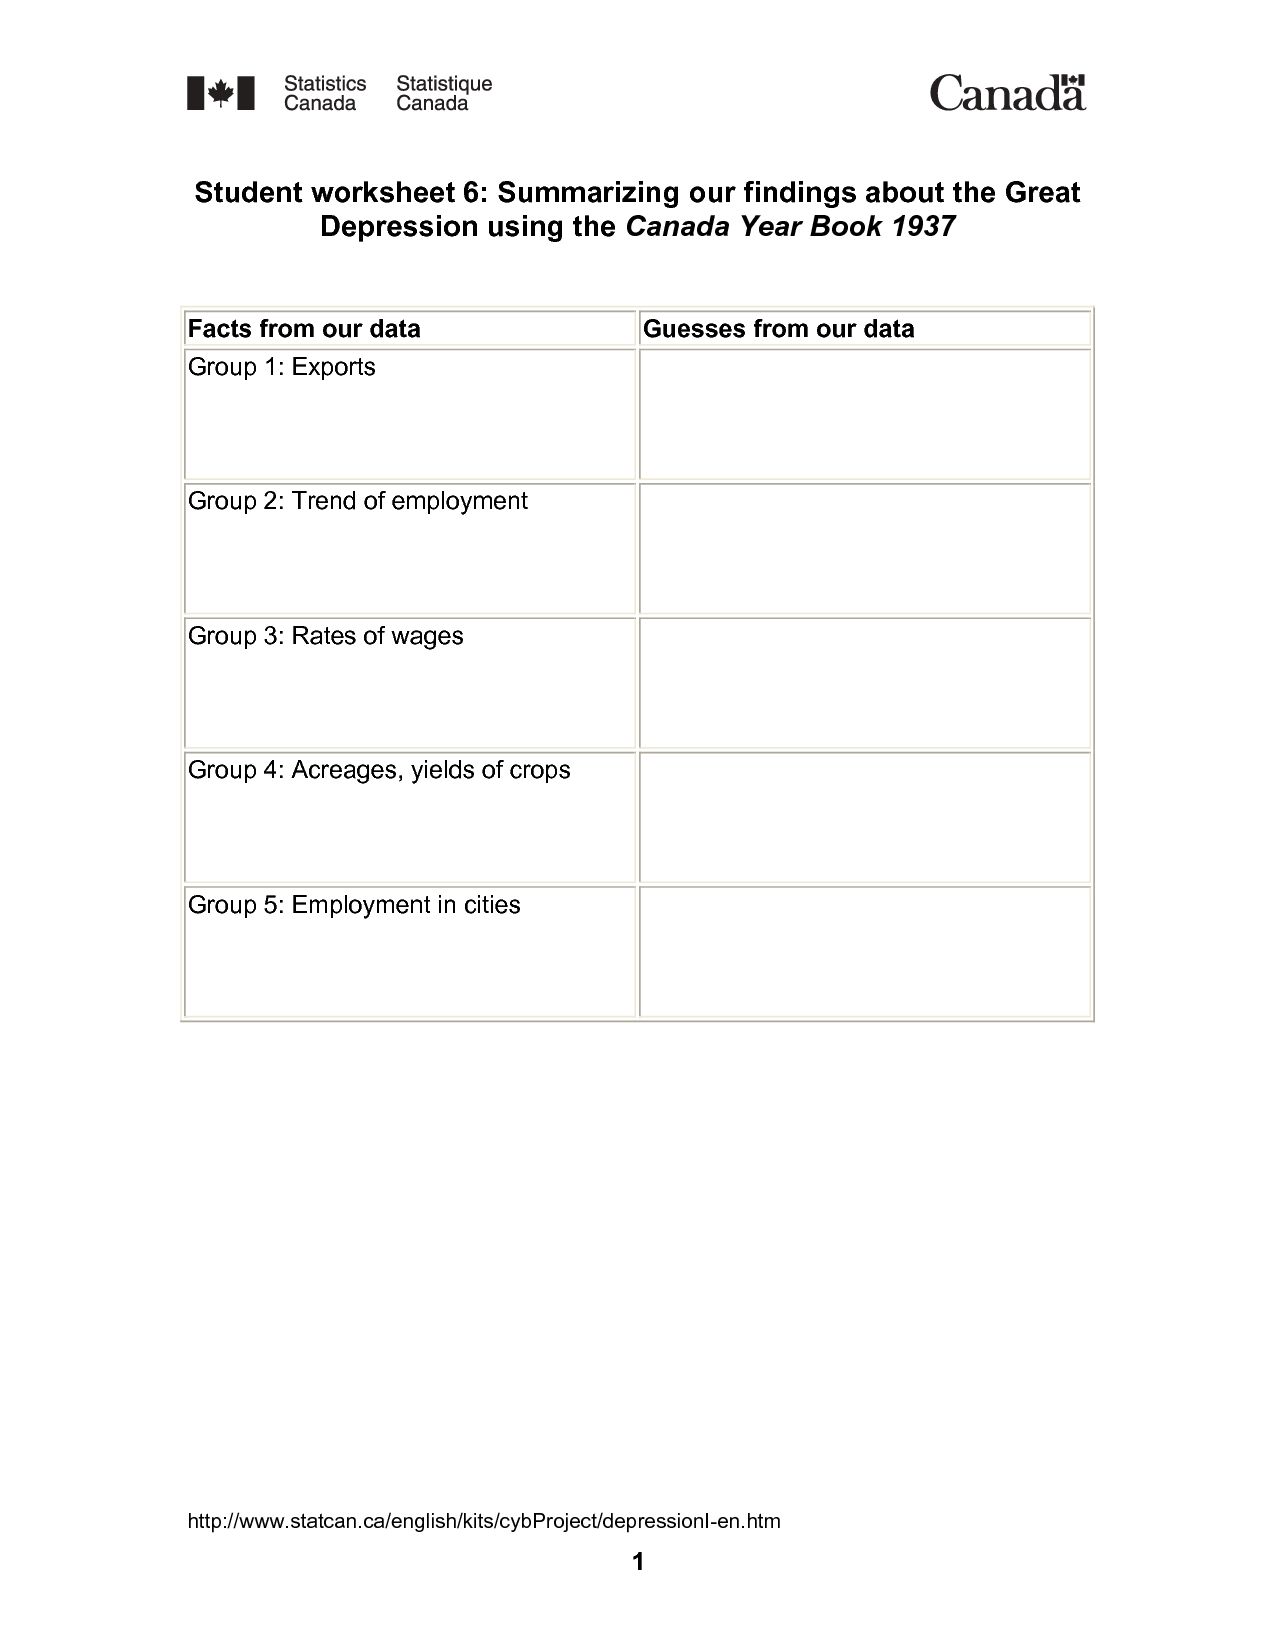 33 The Great Depression Begins Worksheet Answers